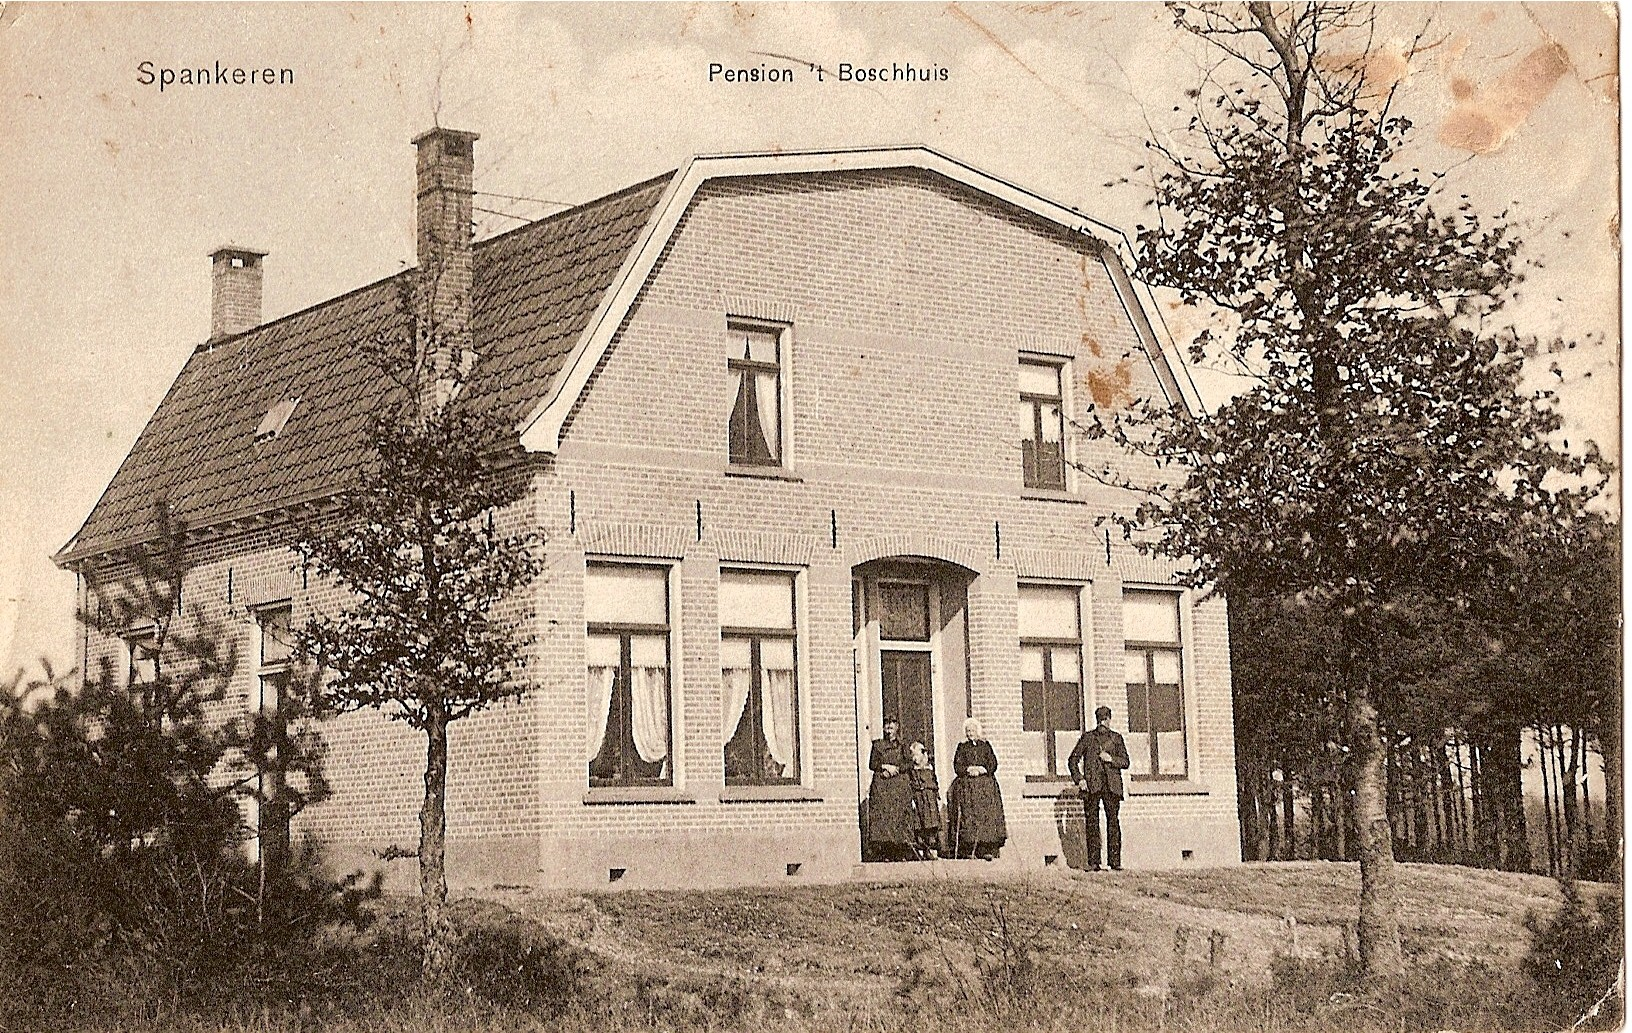 127-pension-tboschhuis